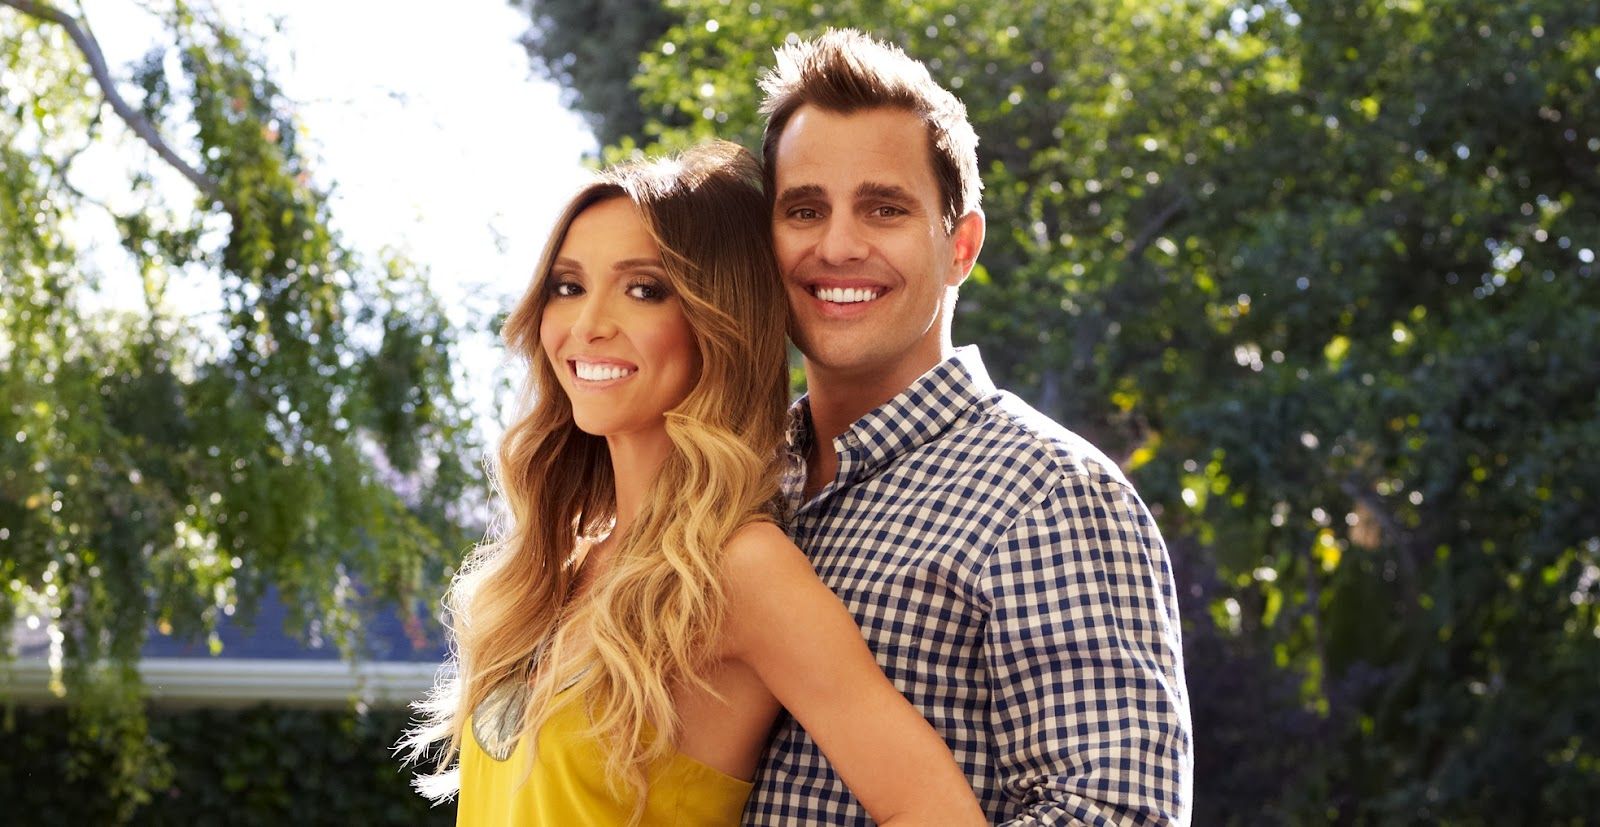 Do you want to be neighbors to Giuliana and bill rancic